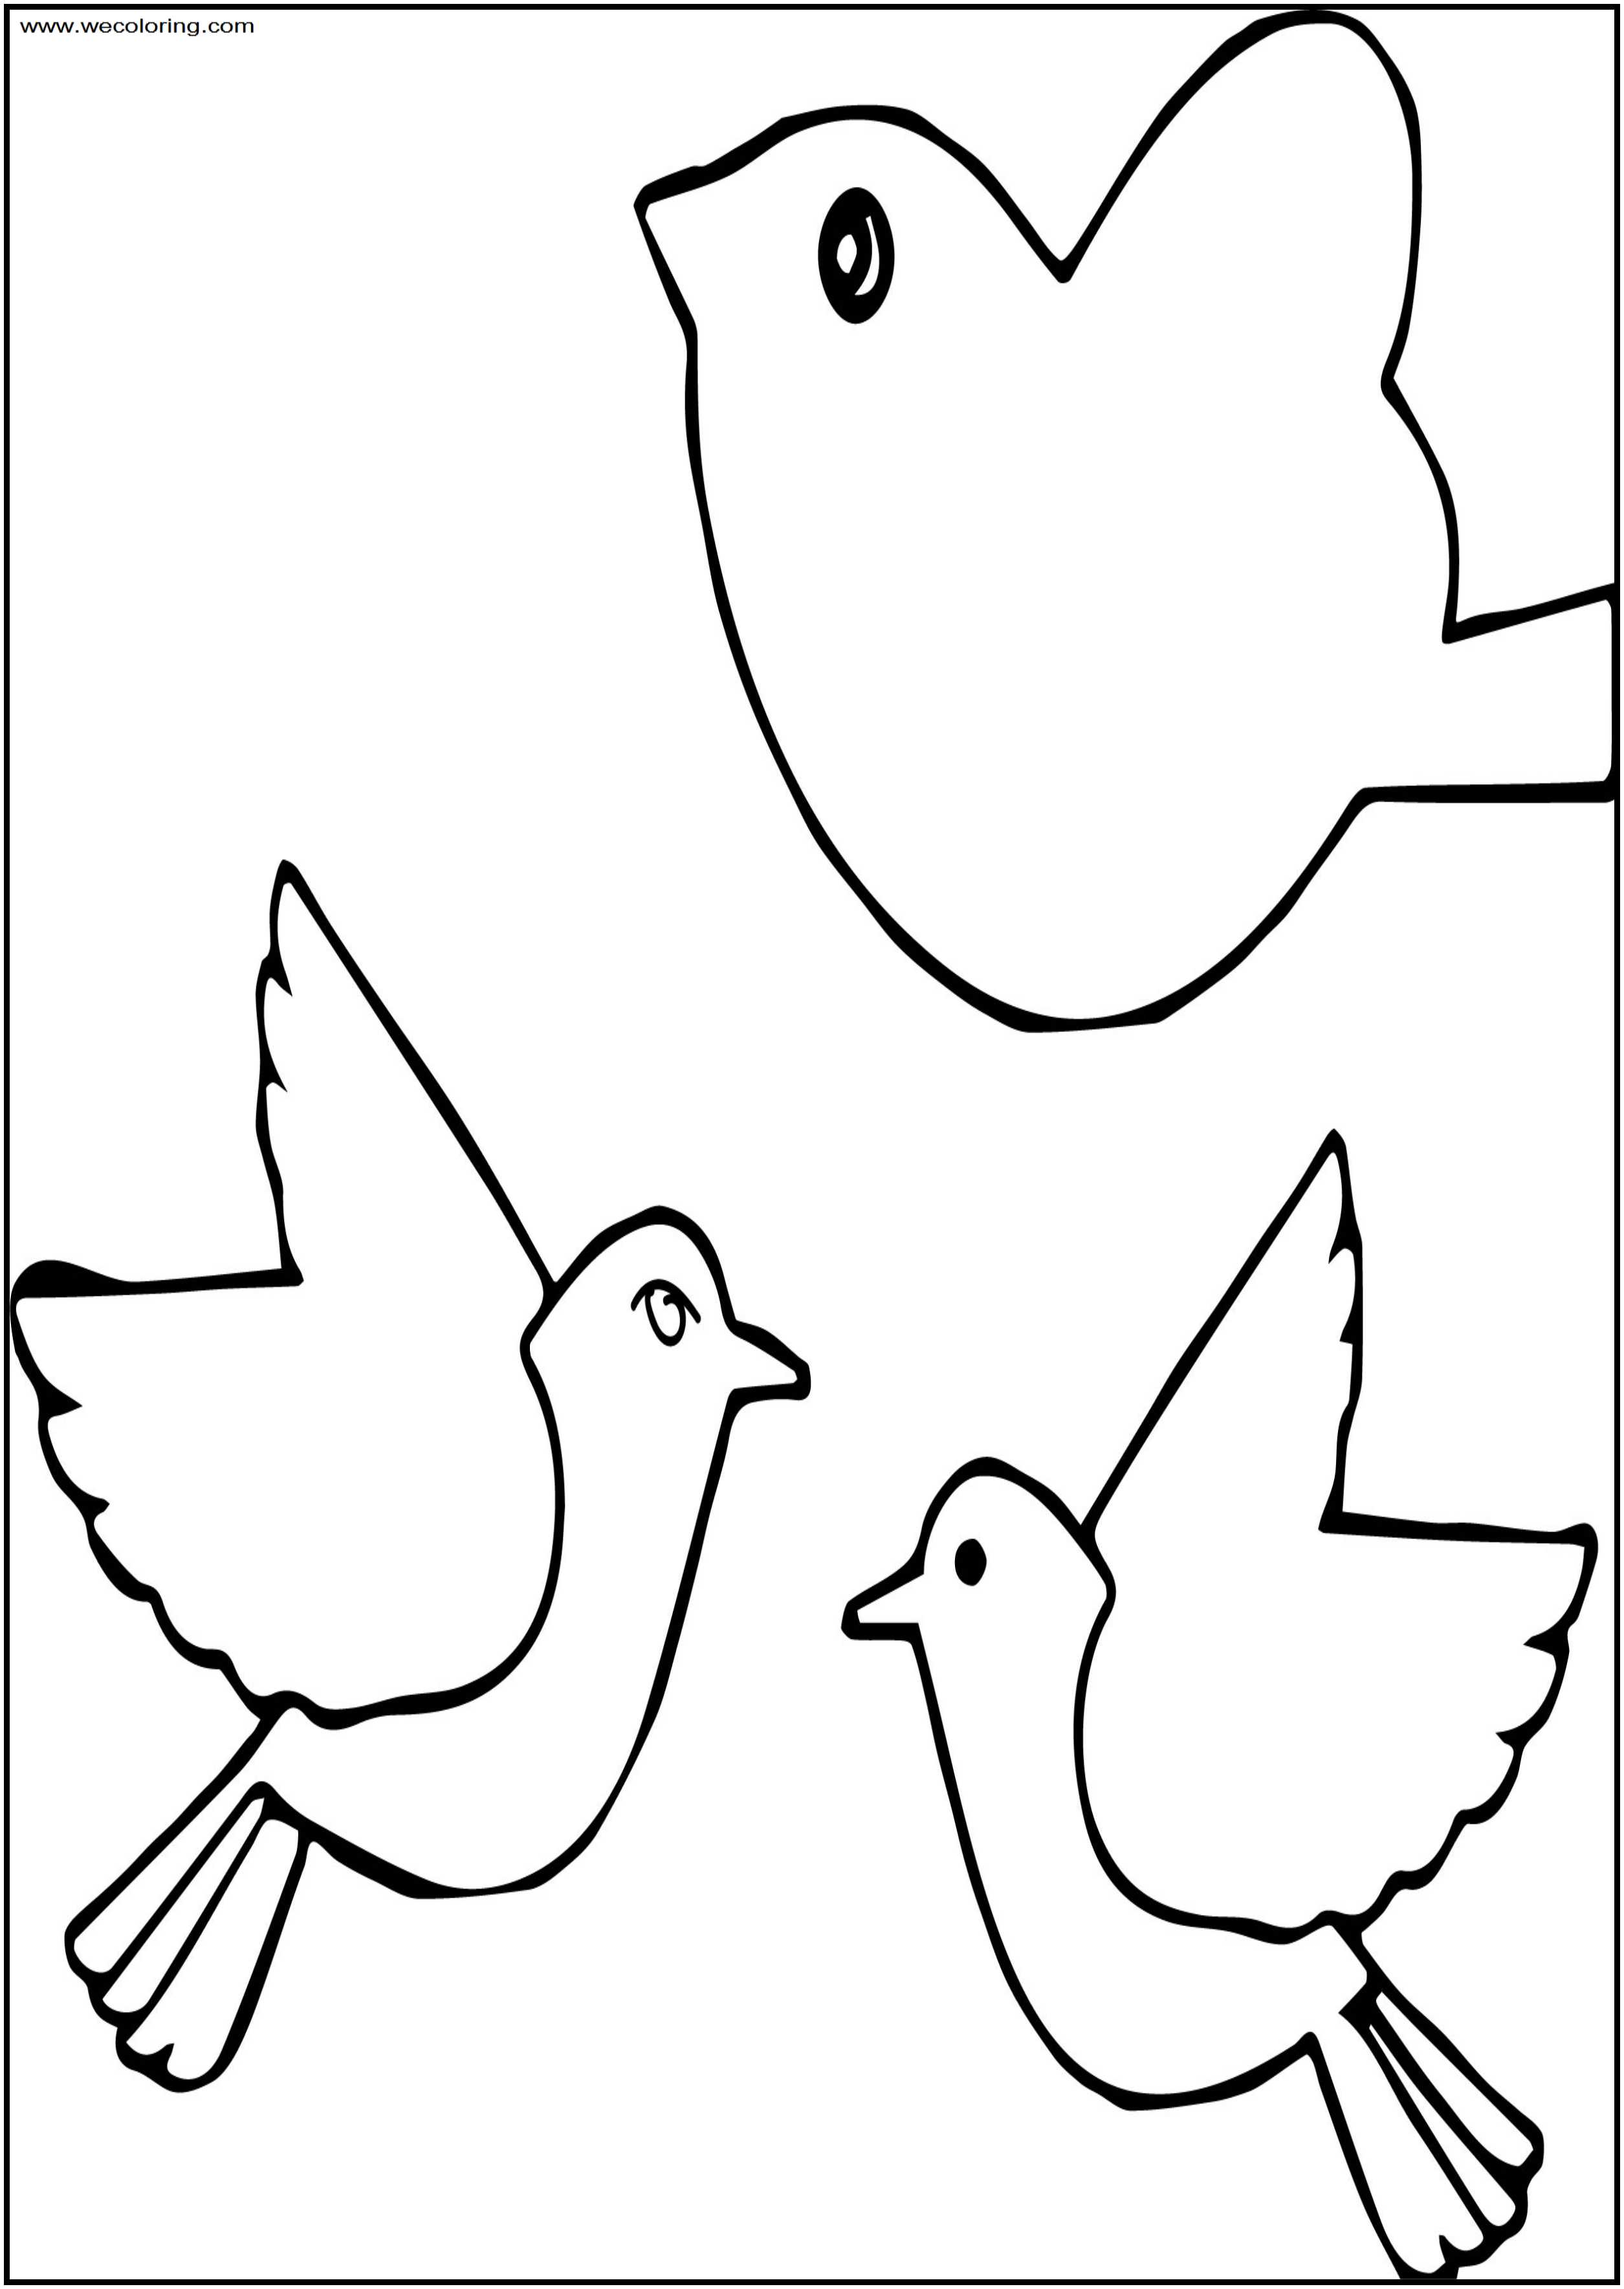 A Bird Free A4 Printable Coloring Page